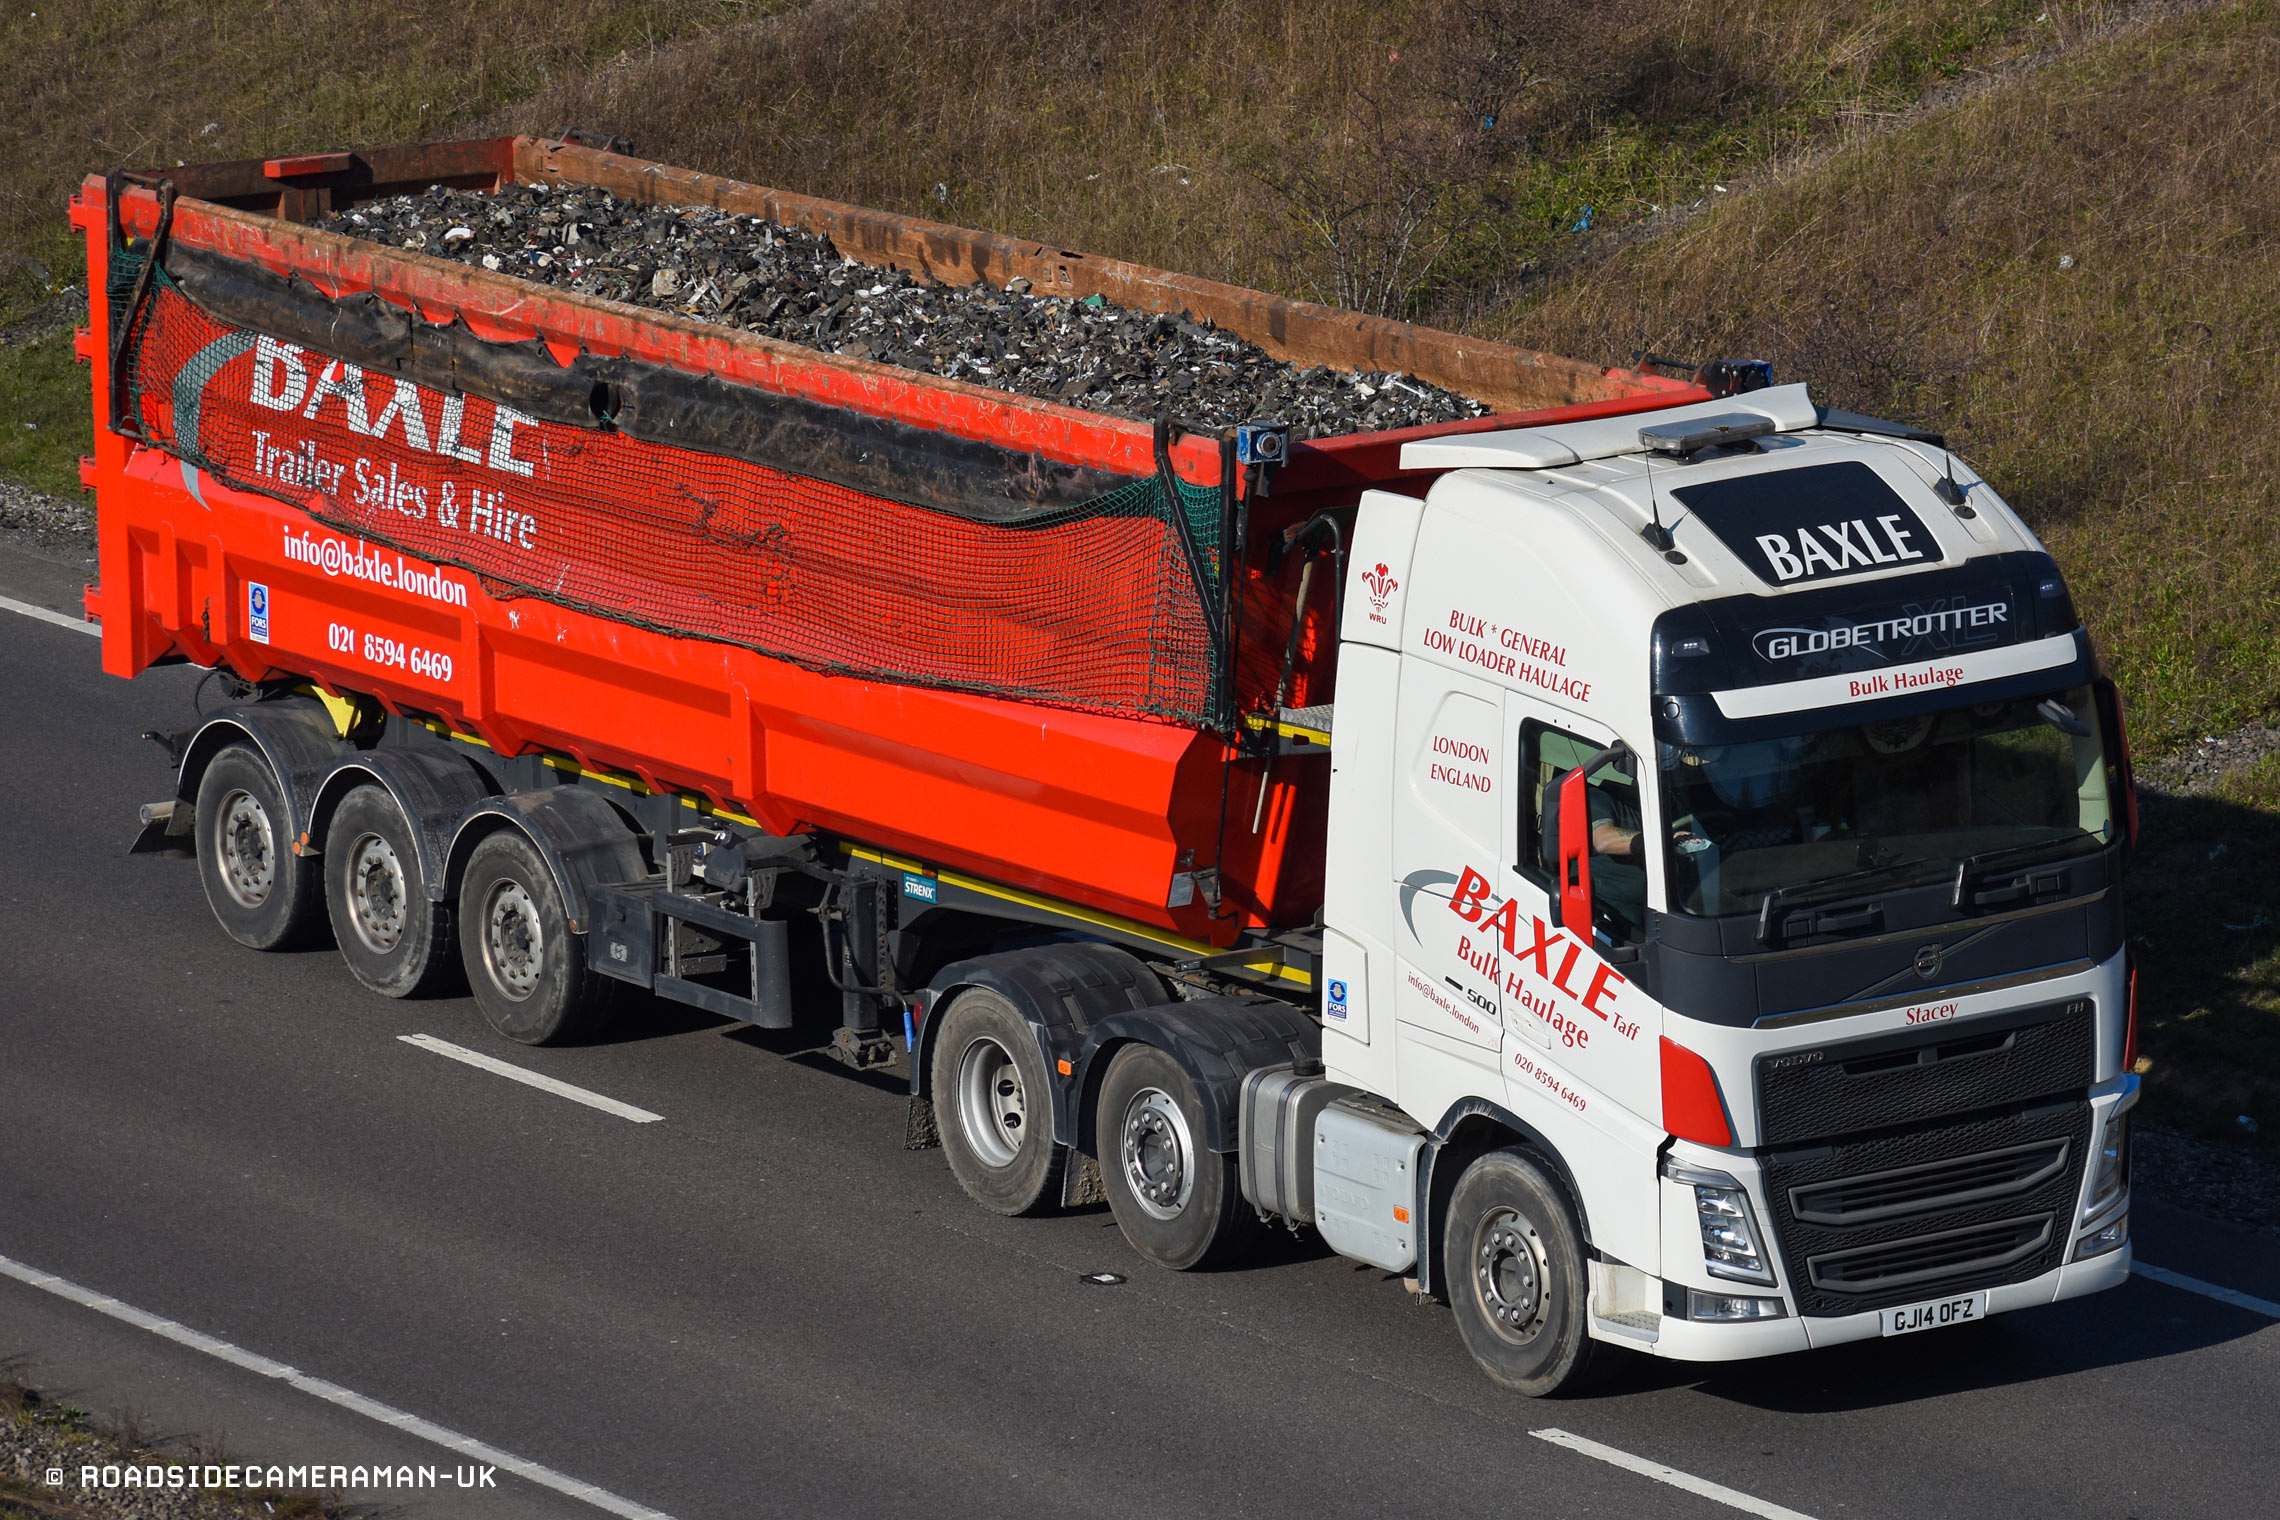 Baxle bulk tipping services in London